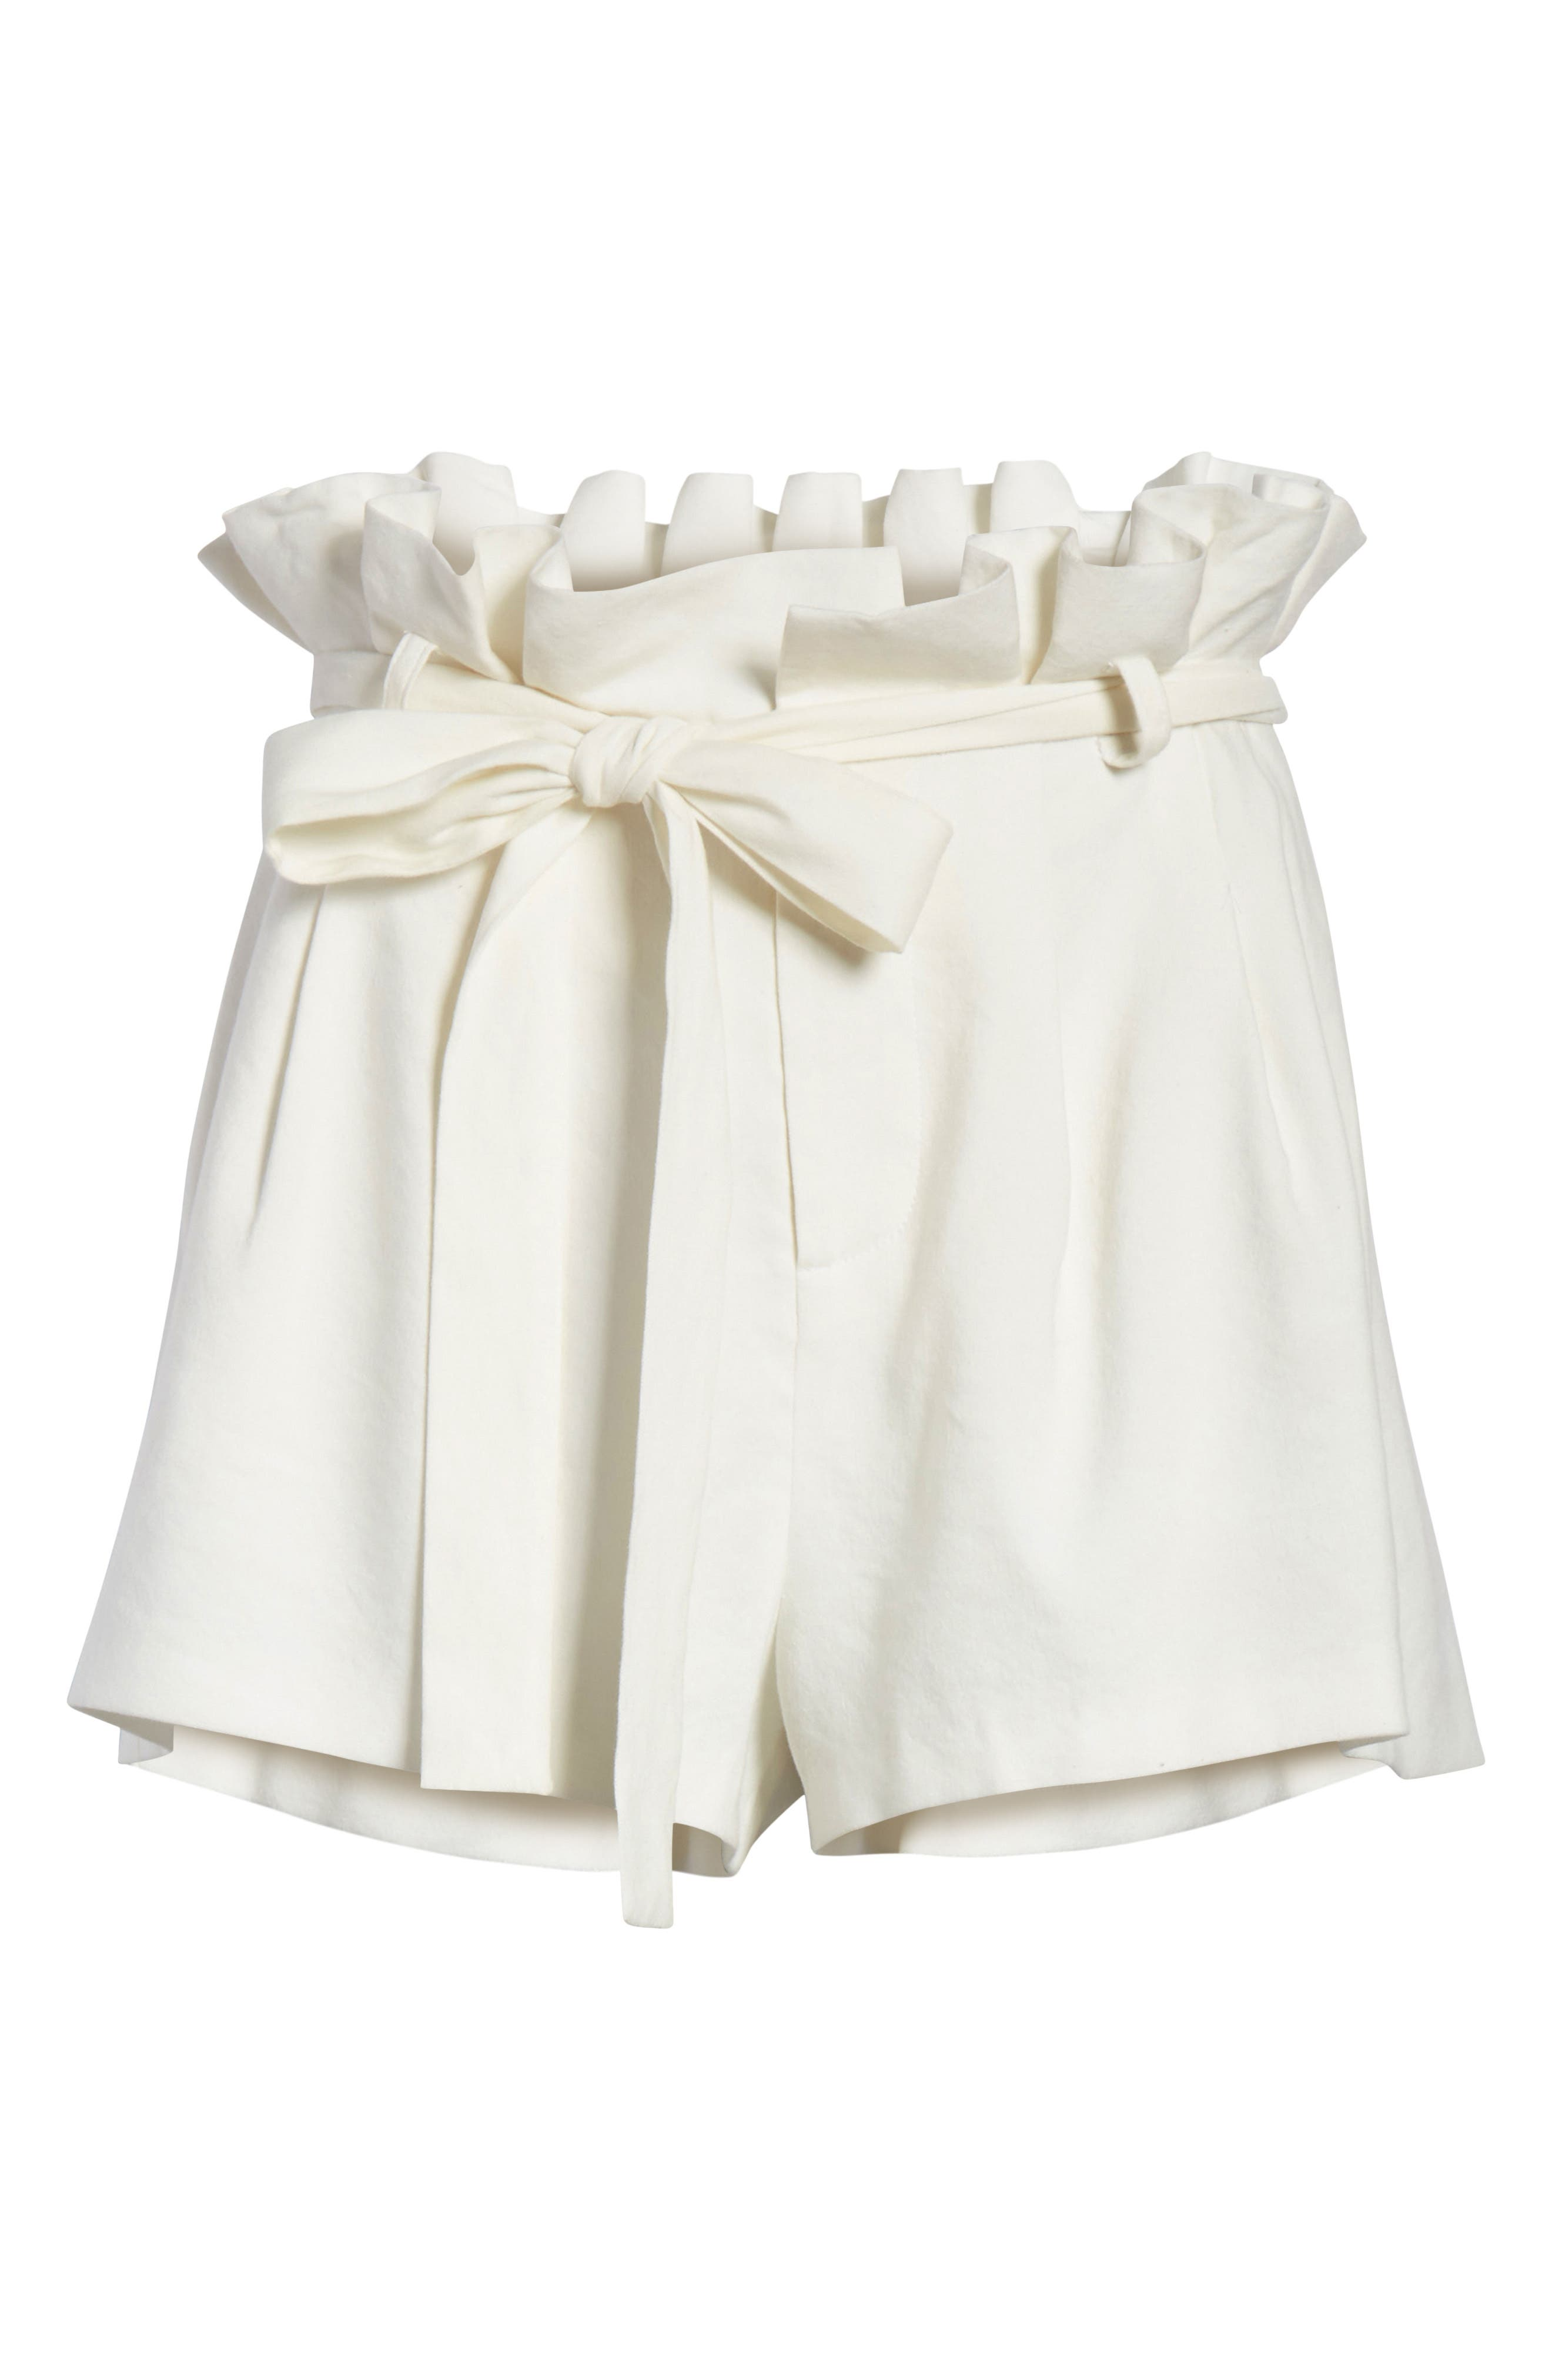 Laurine Paperbag Shorts,                             Alternate thumbnail 6, color,                             127